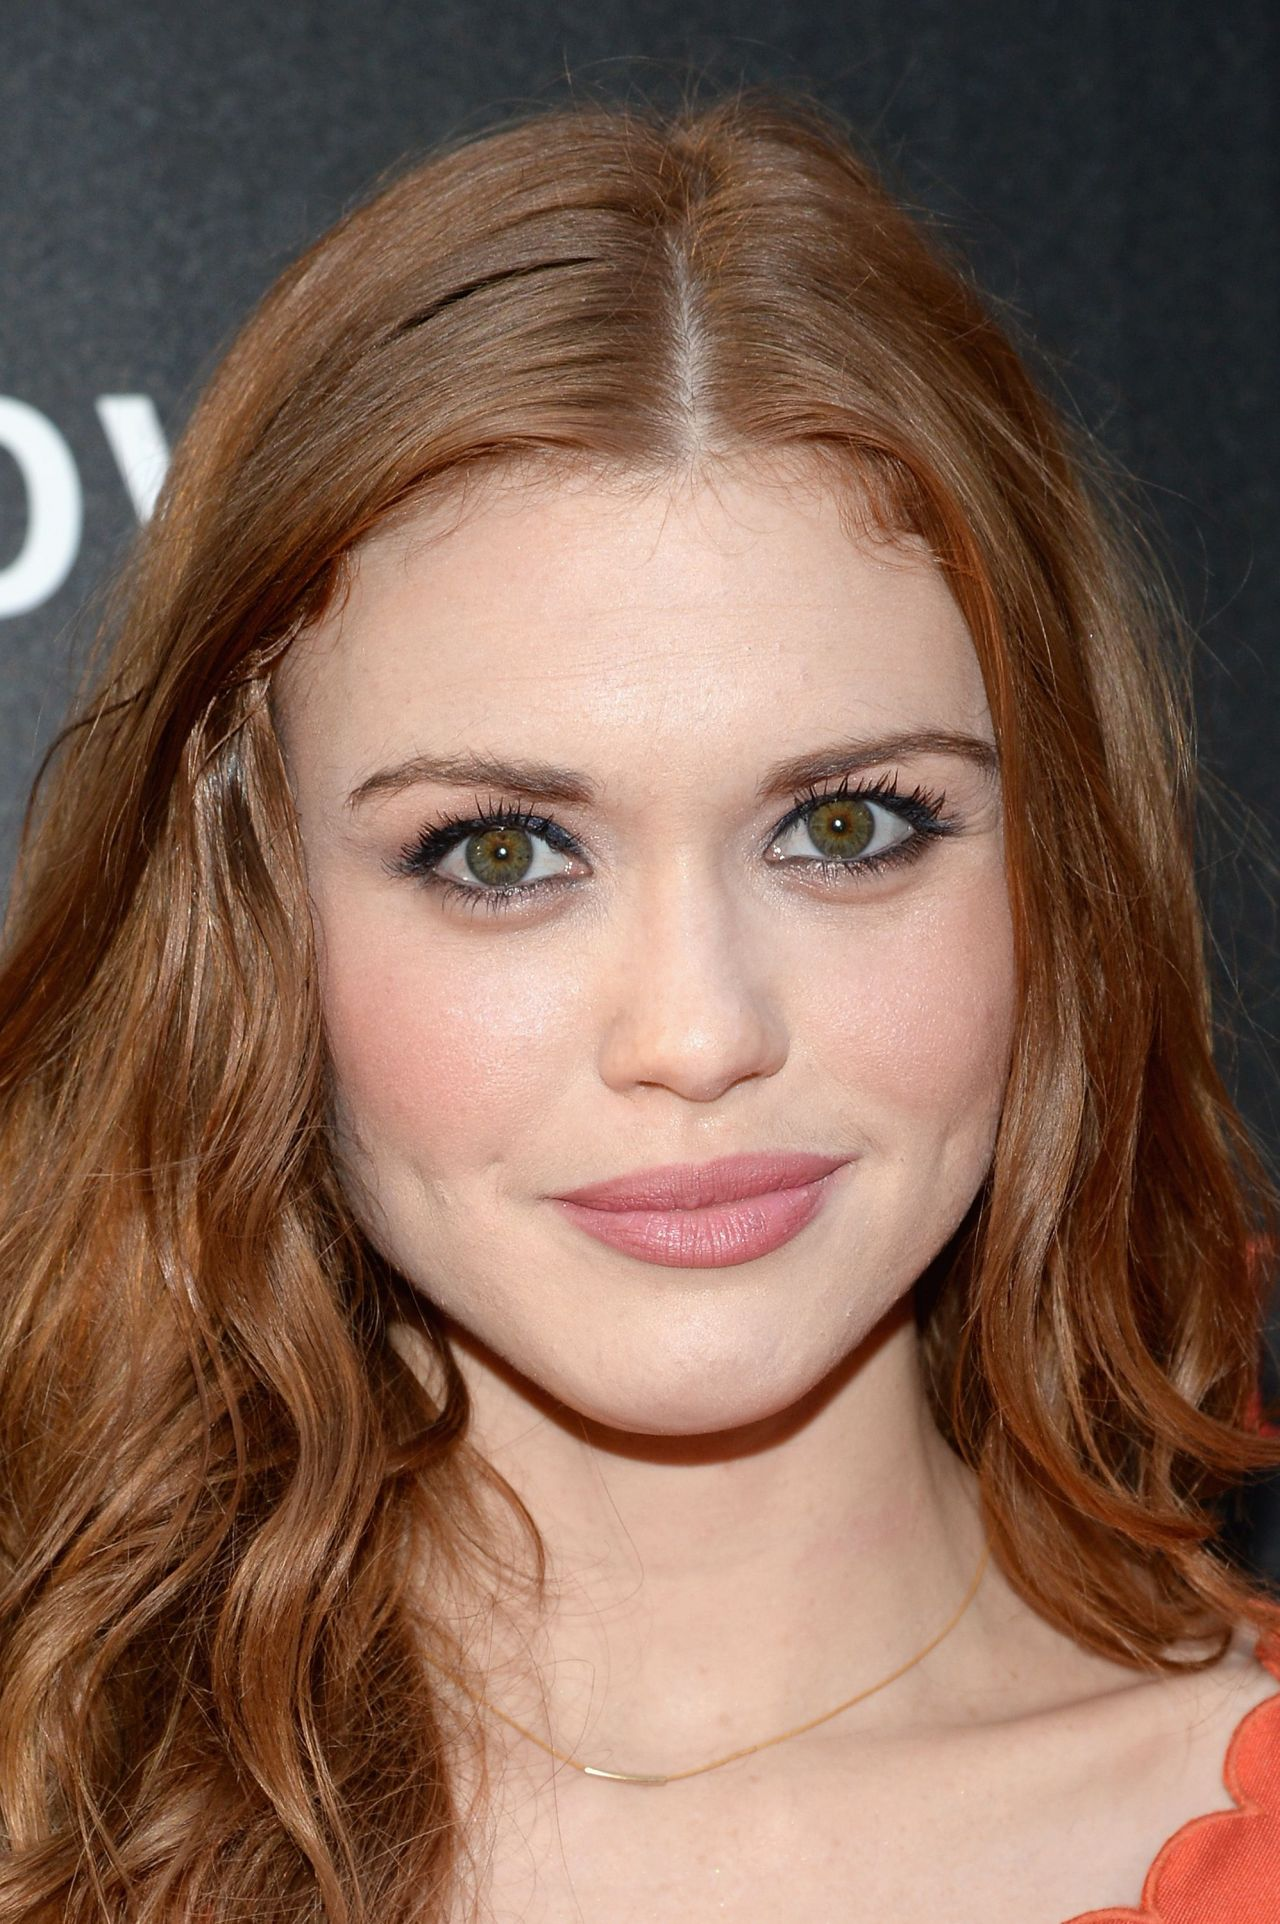 Holland Roden Deliver Us From Evil Premiere In New